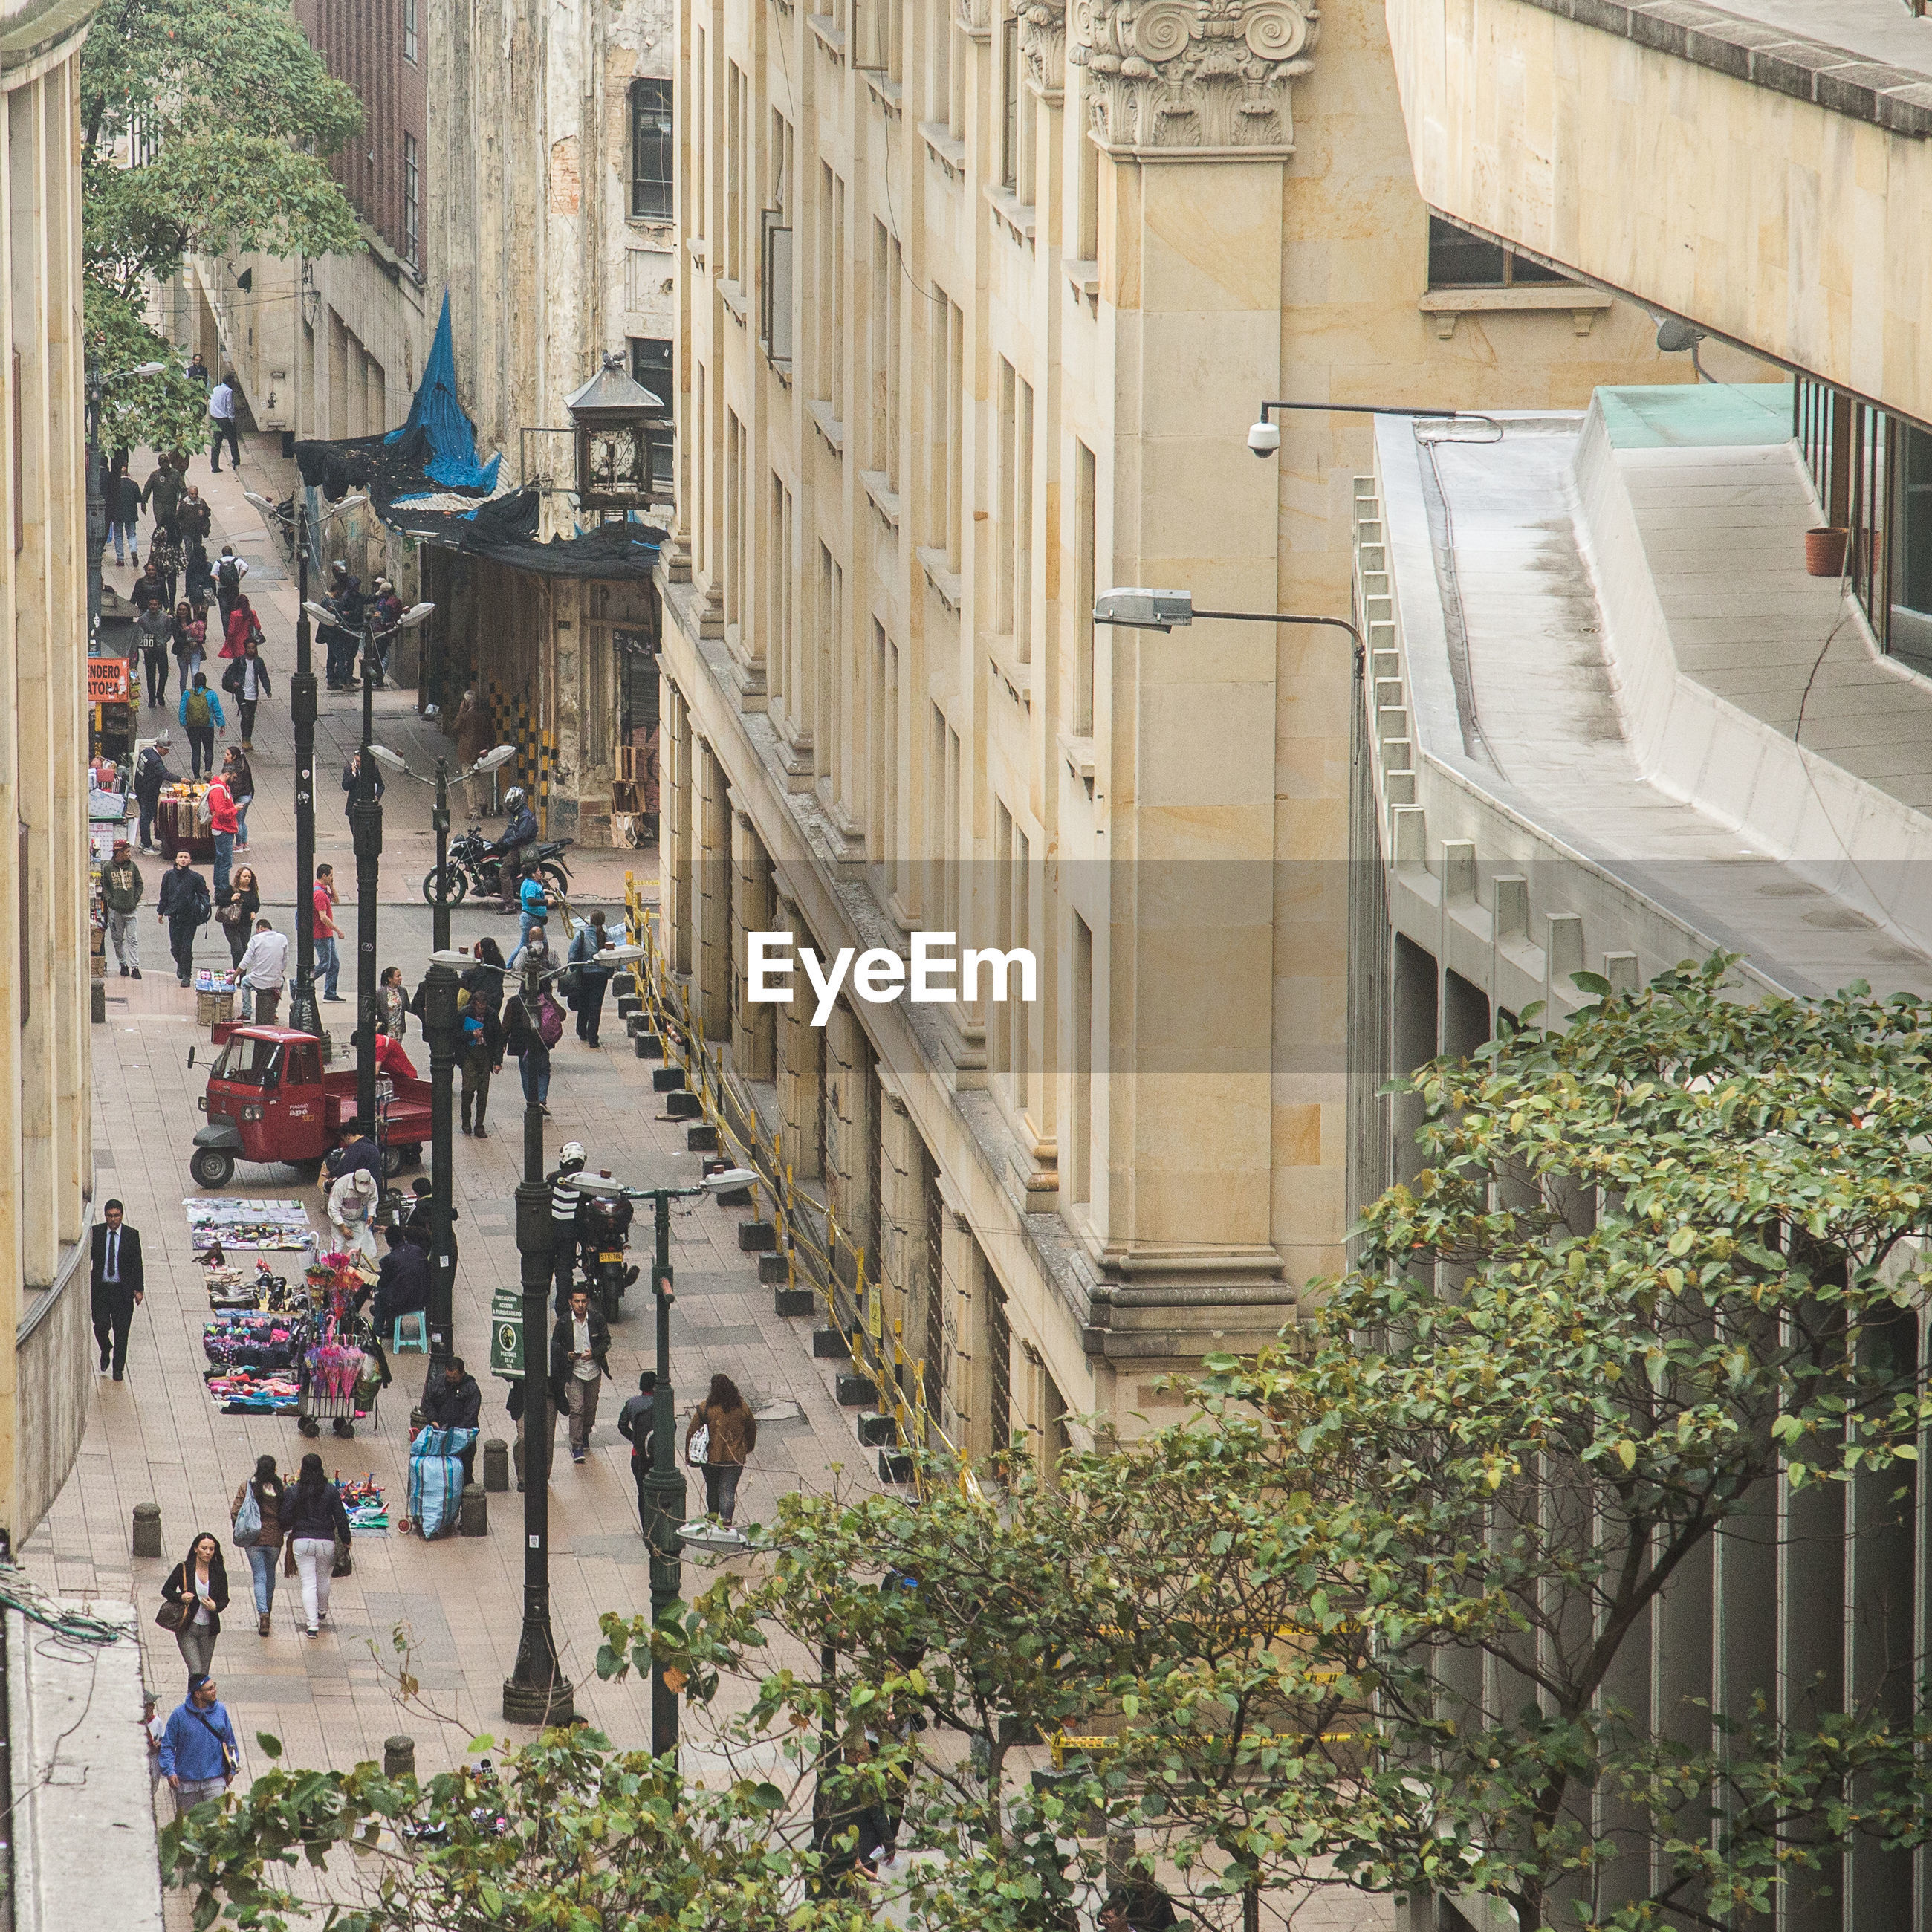 HIGH ANGLE VIEW OF PEOPLE ON STREET BY BUILDINGS